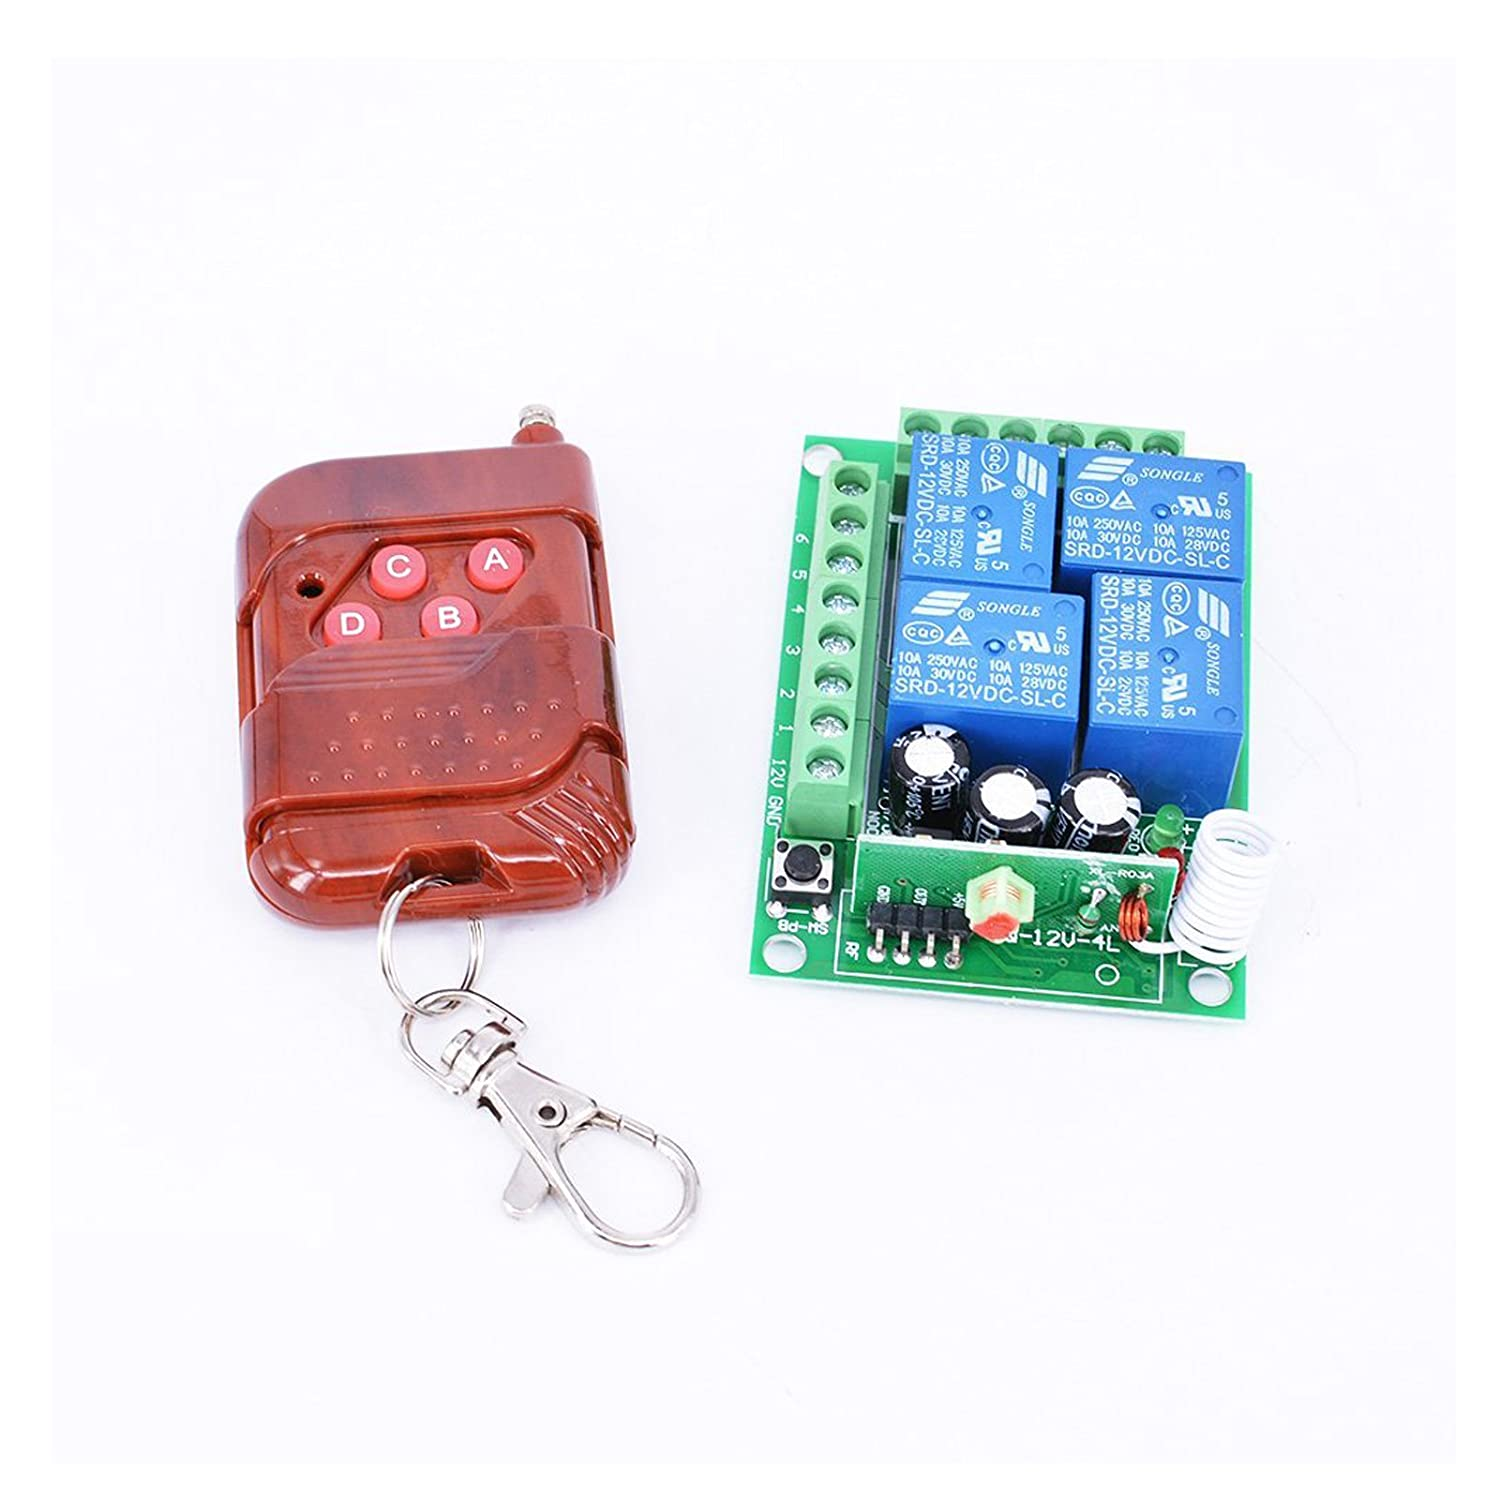 Hot Thunbird New 12v 4 Channel Wireless Remote Control Receiver Momentary Wiring Diagram Switch Garage Door Controls